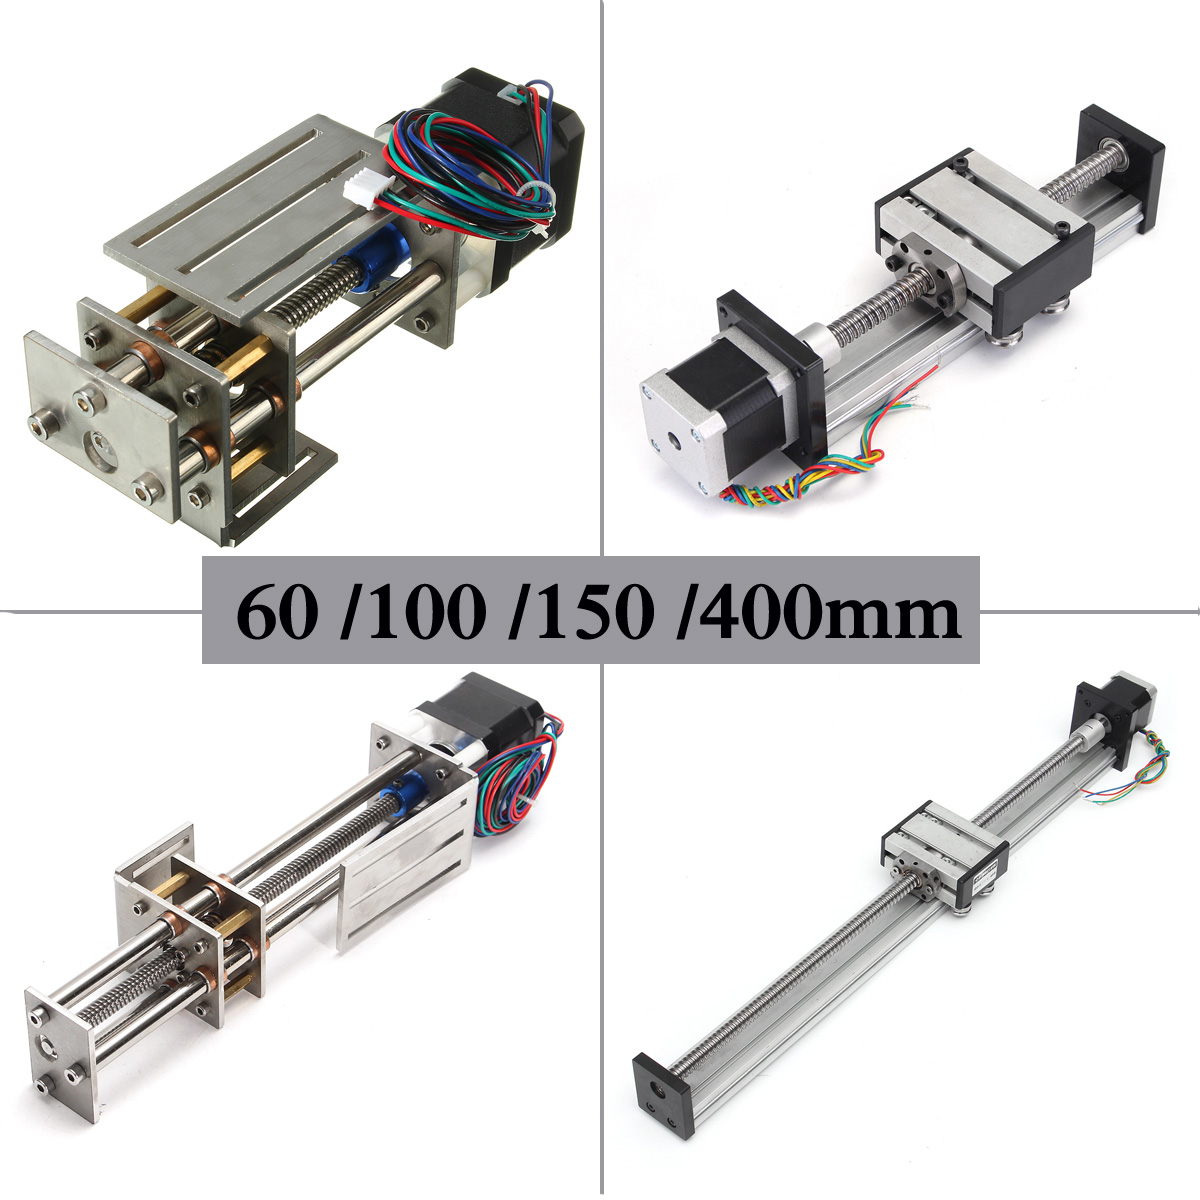 60/100/150 CNC Z Axis Slide / Ball Screw CNC Linear Slide Stroke Motion DIY Linear Motion Milling 3 Axis Engraving